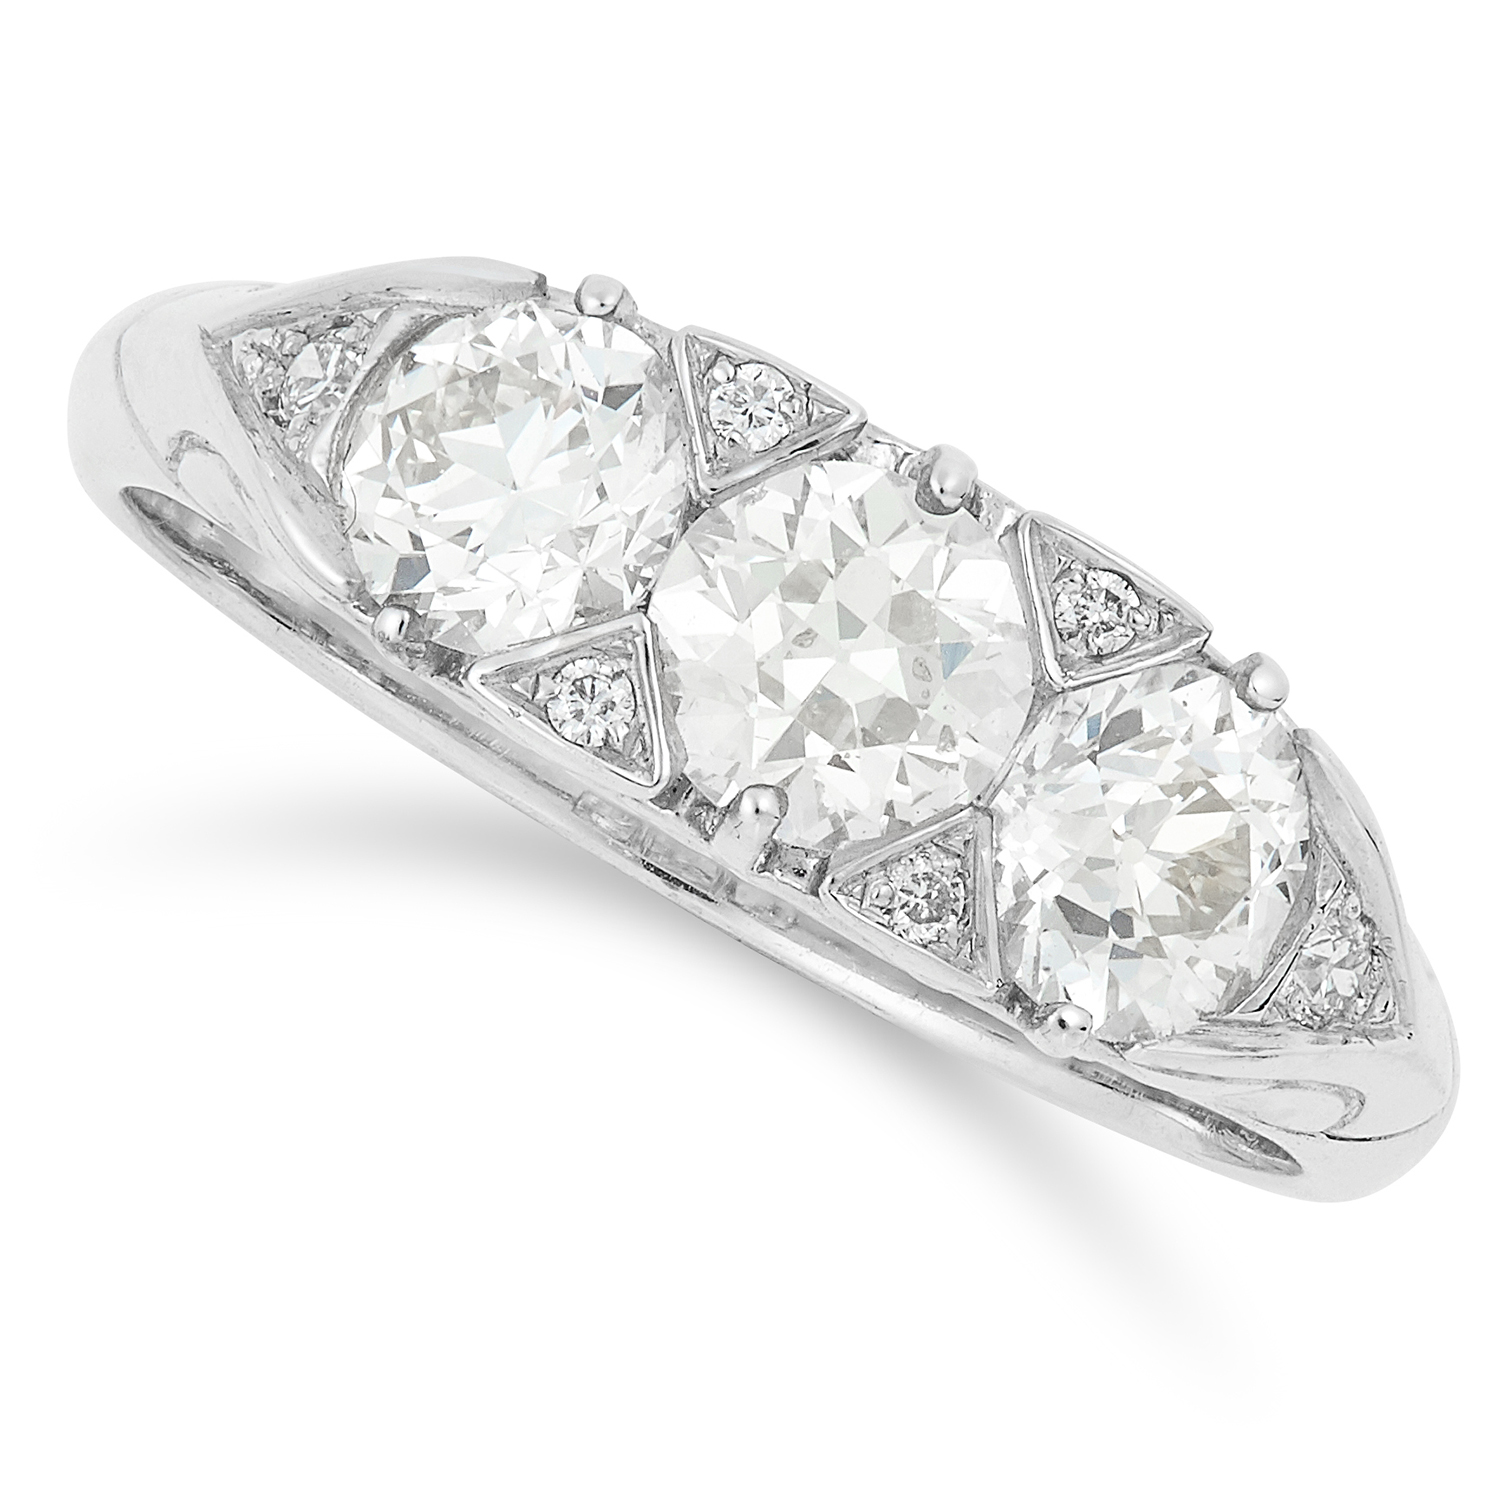 Los 21 - 1.29 CARAT THREE STONE RING set with three round cut diamonds, size M / 6, 4.4g.